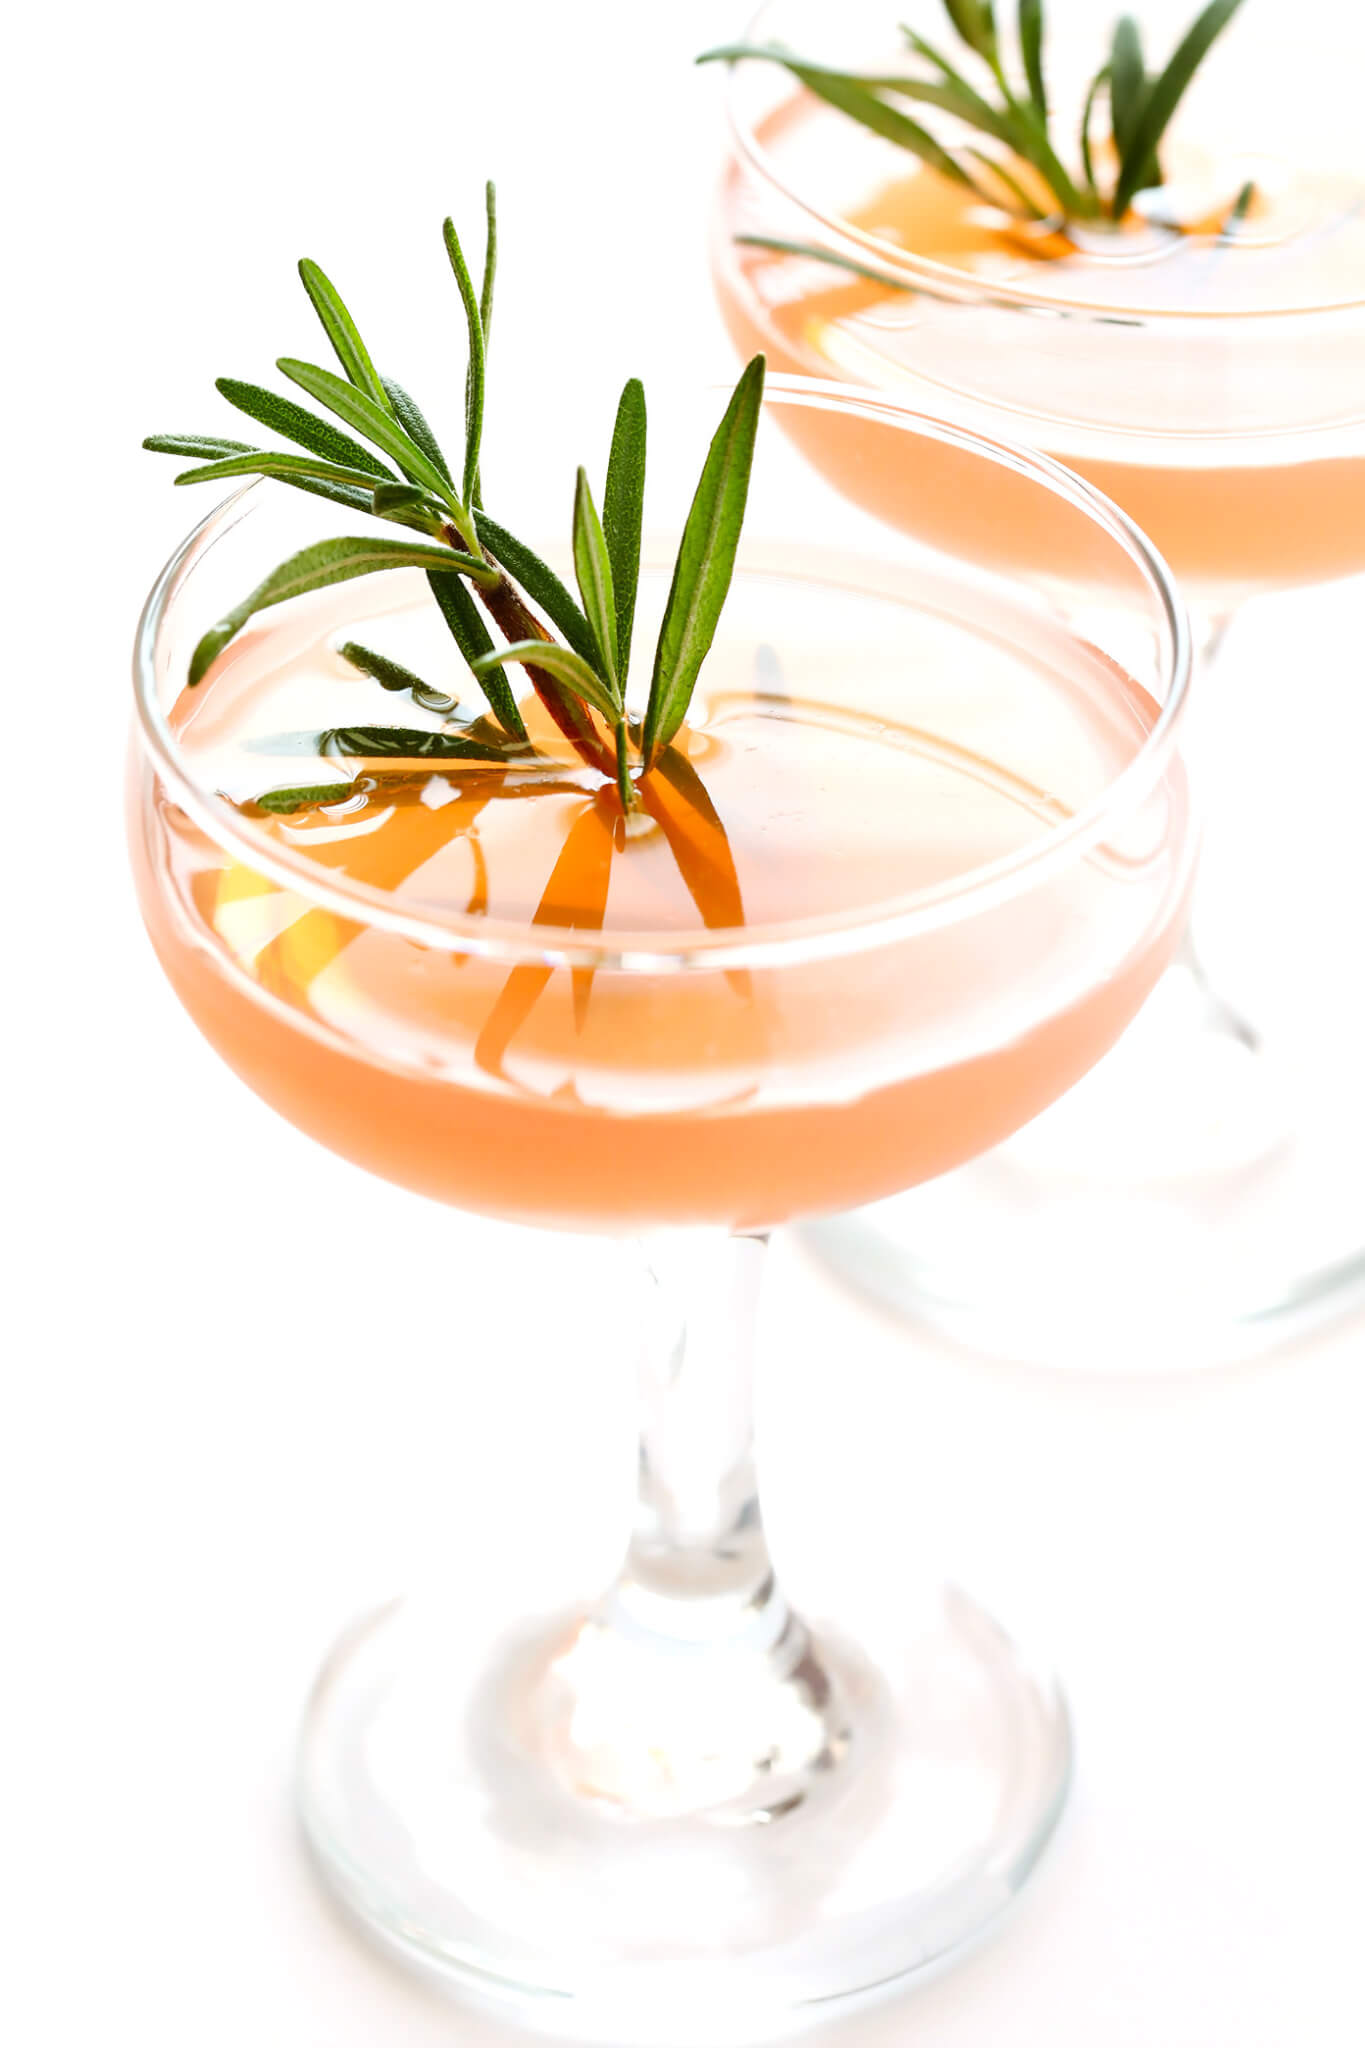 "These refreshing 30-second cocktails are quick and easy to make, they're made with gin (or vodka), St. Germain (elderflower liqueur) and grapefruit juice, and garnished with a sprig of fresh rosemary. They are classically known as the ""Frenchie"" or ""Frenchy"" cocktail -- so delicious!"